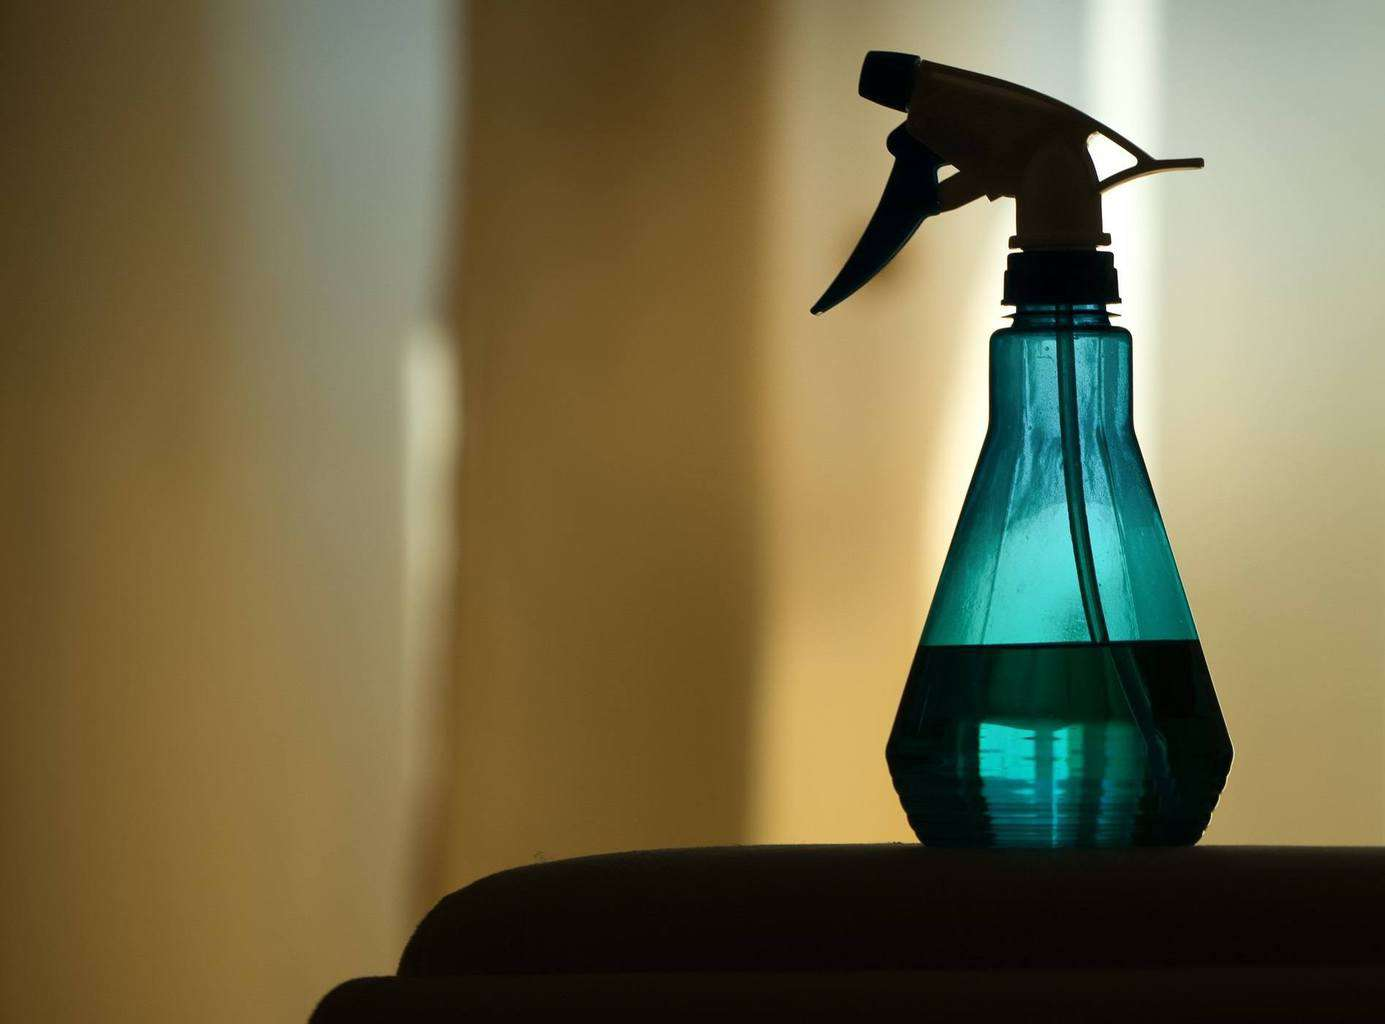 Blue spritzer bottle in front of a curtain